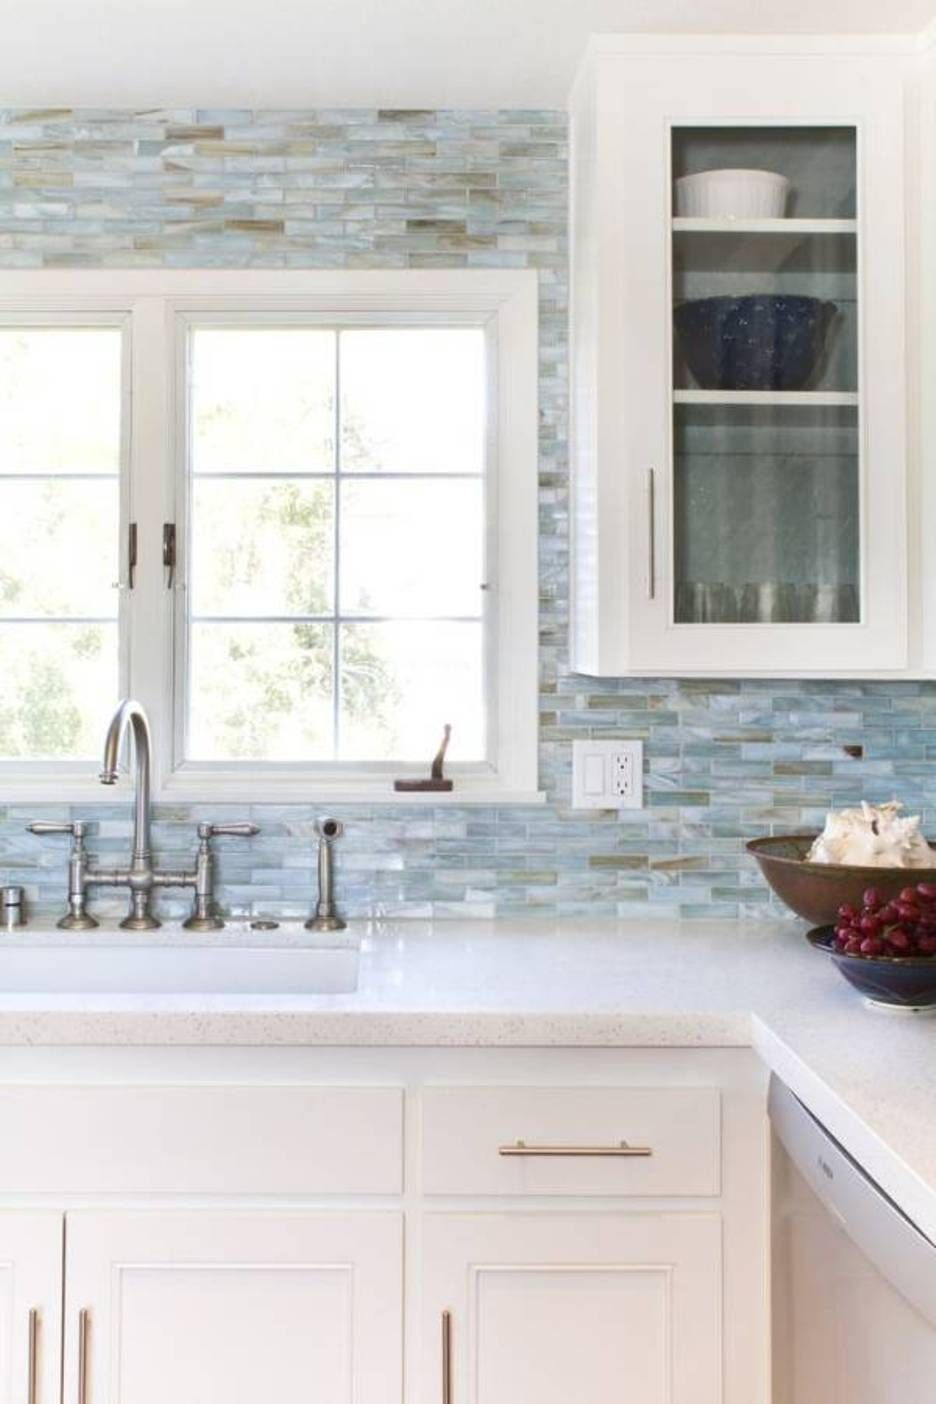 Kitchen glass mosaic backsplash for white cabinets and undermount sink faucet with in also